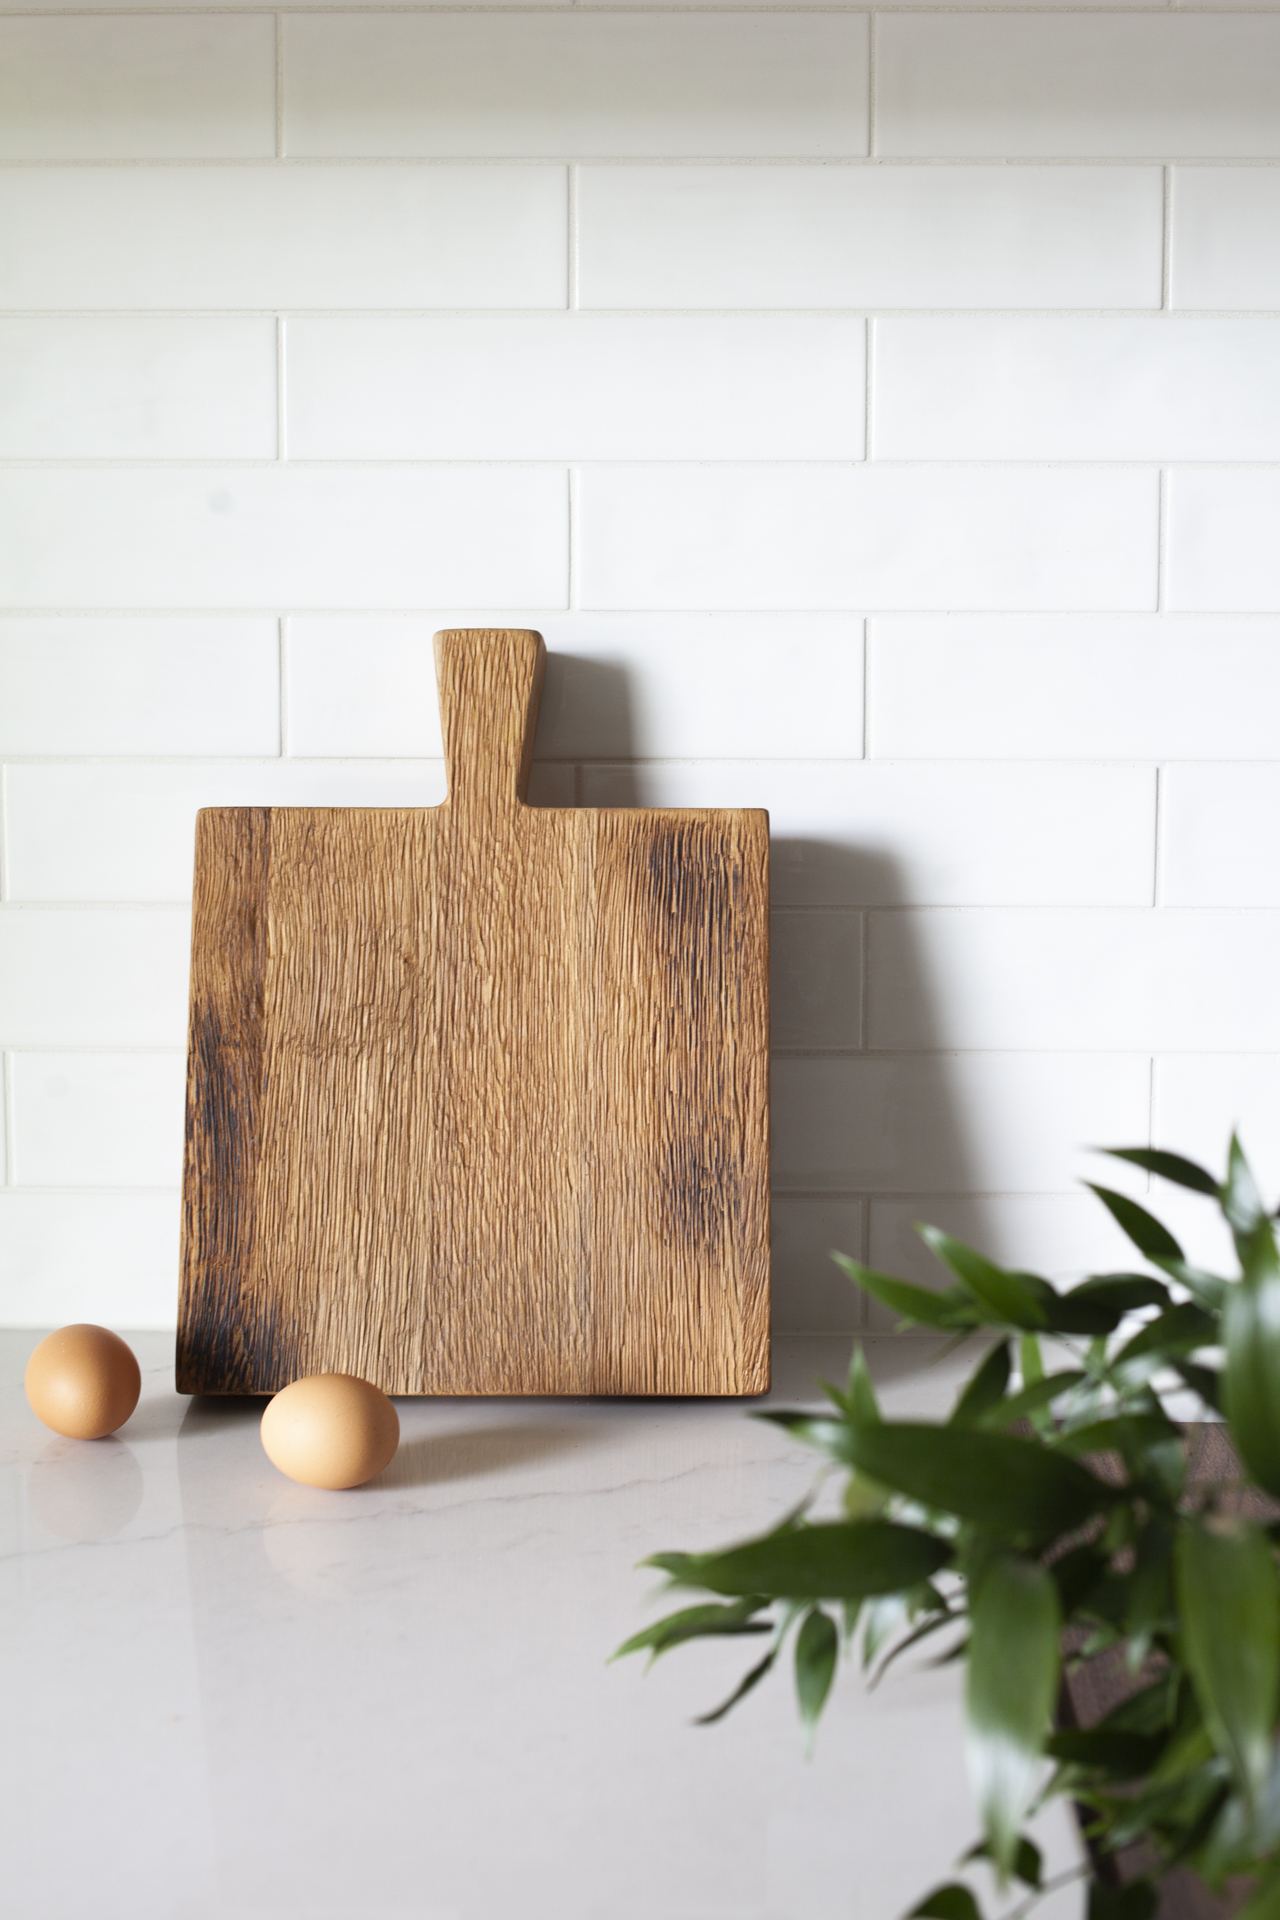 French Cutting Board, $112   Quality, reclaimed, refined : the makings of a cutting board that will stand the test of time. The French Cutting board is square, sporting its  natural texture  and hand finished with organic oil. It's  a kitchen go-to  and a cheese and appetizer platter to boot. The sturdy handle and utility will transport your gift-receiver right into a European countryside oasis. The differing textures add to the charm: one side is smooth for chopping, the other is natural in texture for serving. It's as  sturdy, rustic, and classic as it is timeless.